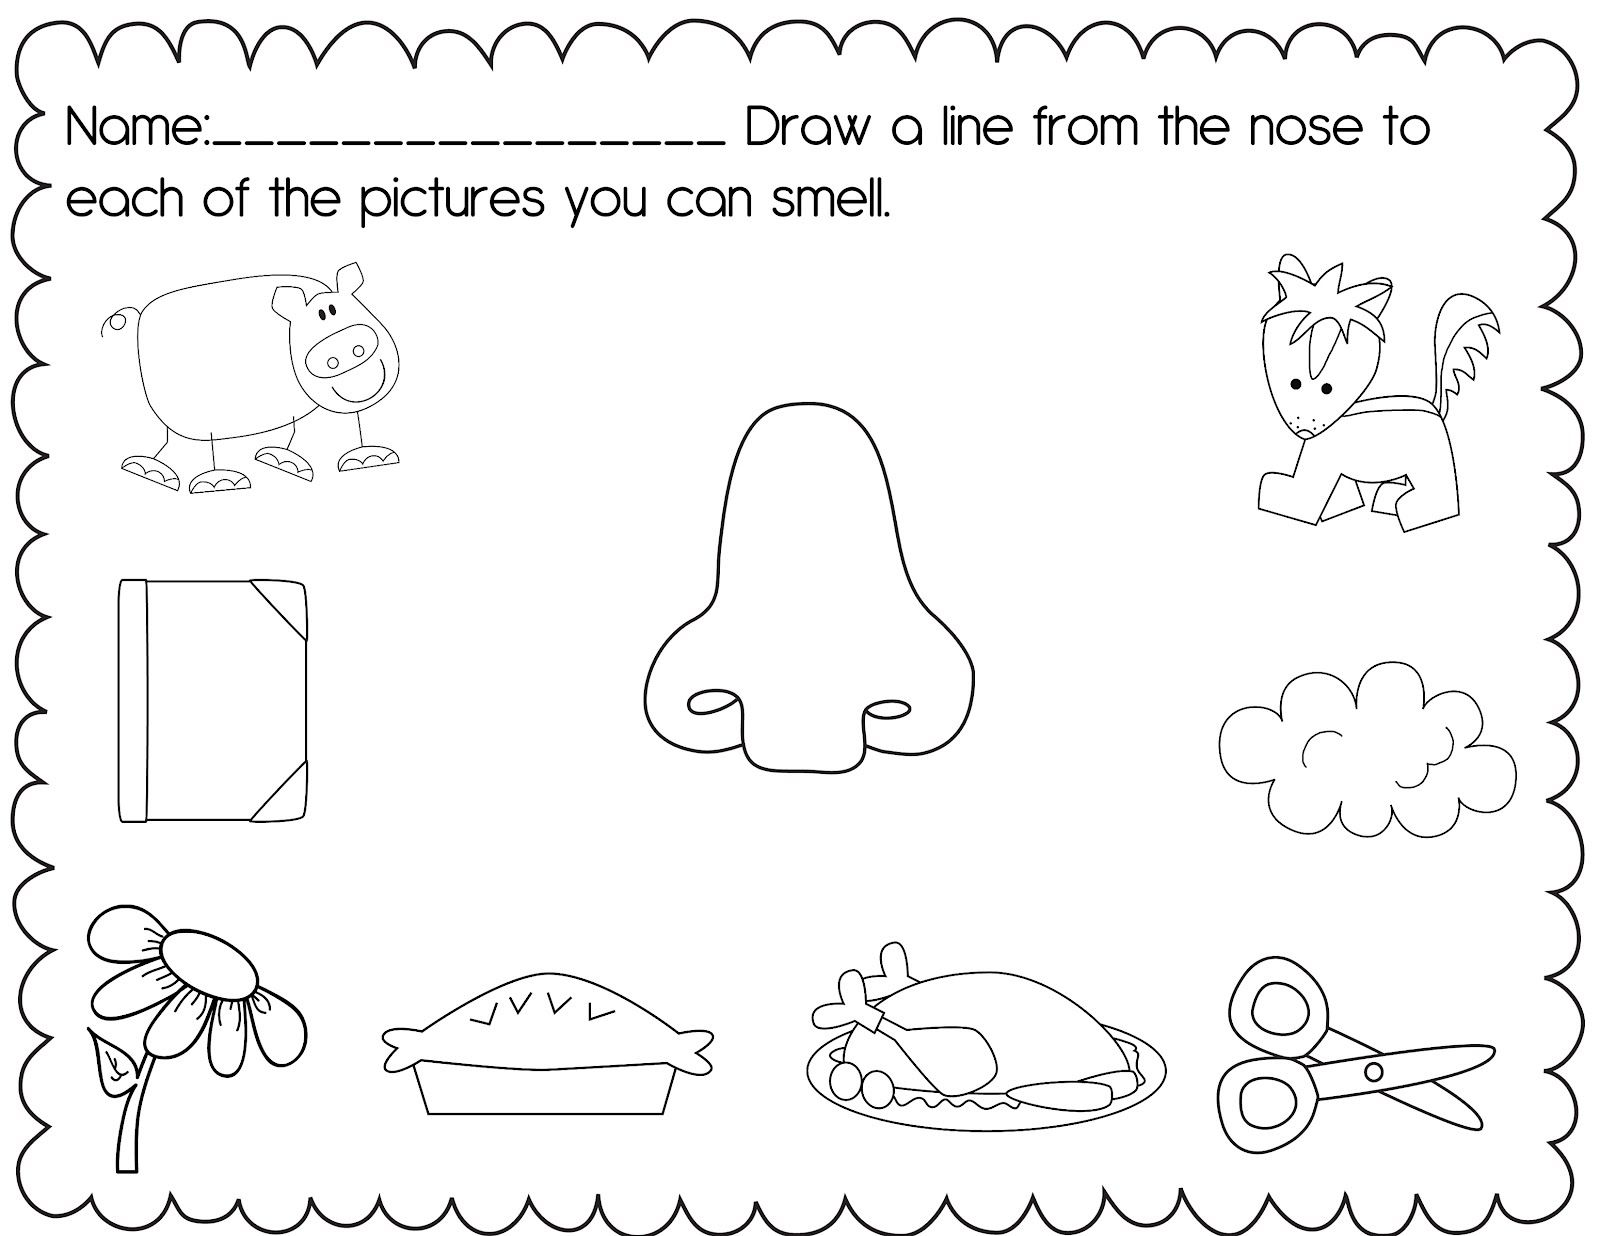 5 Senses Kindergarten Worksheets Davezan – Five Senses Worksheets Kindergarten